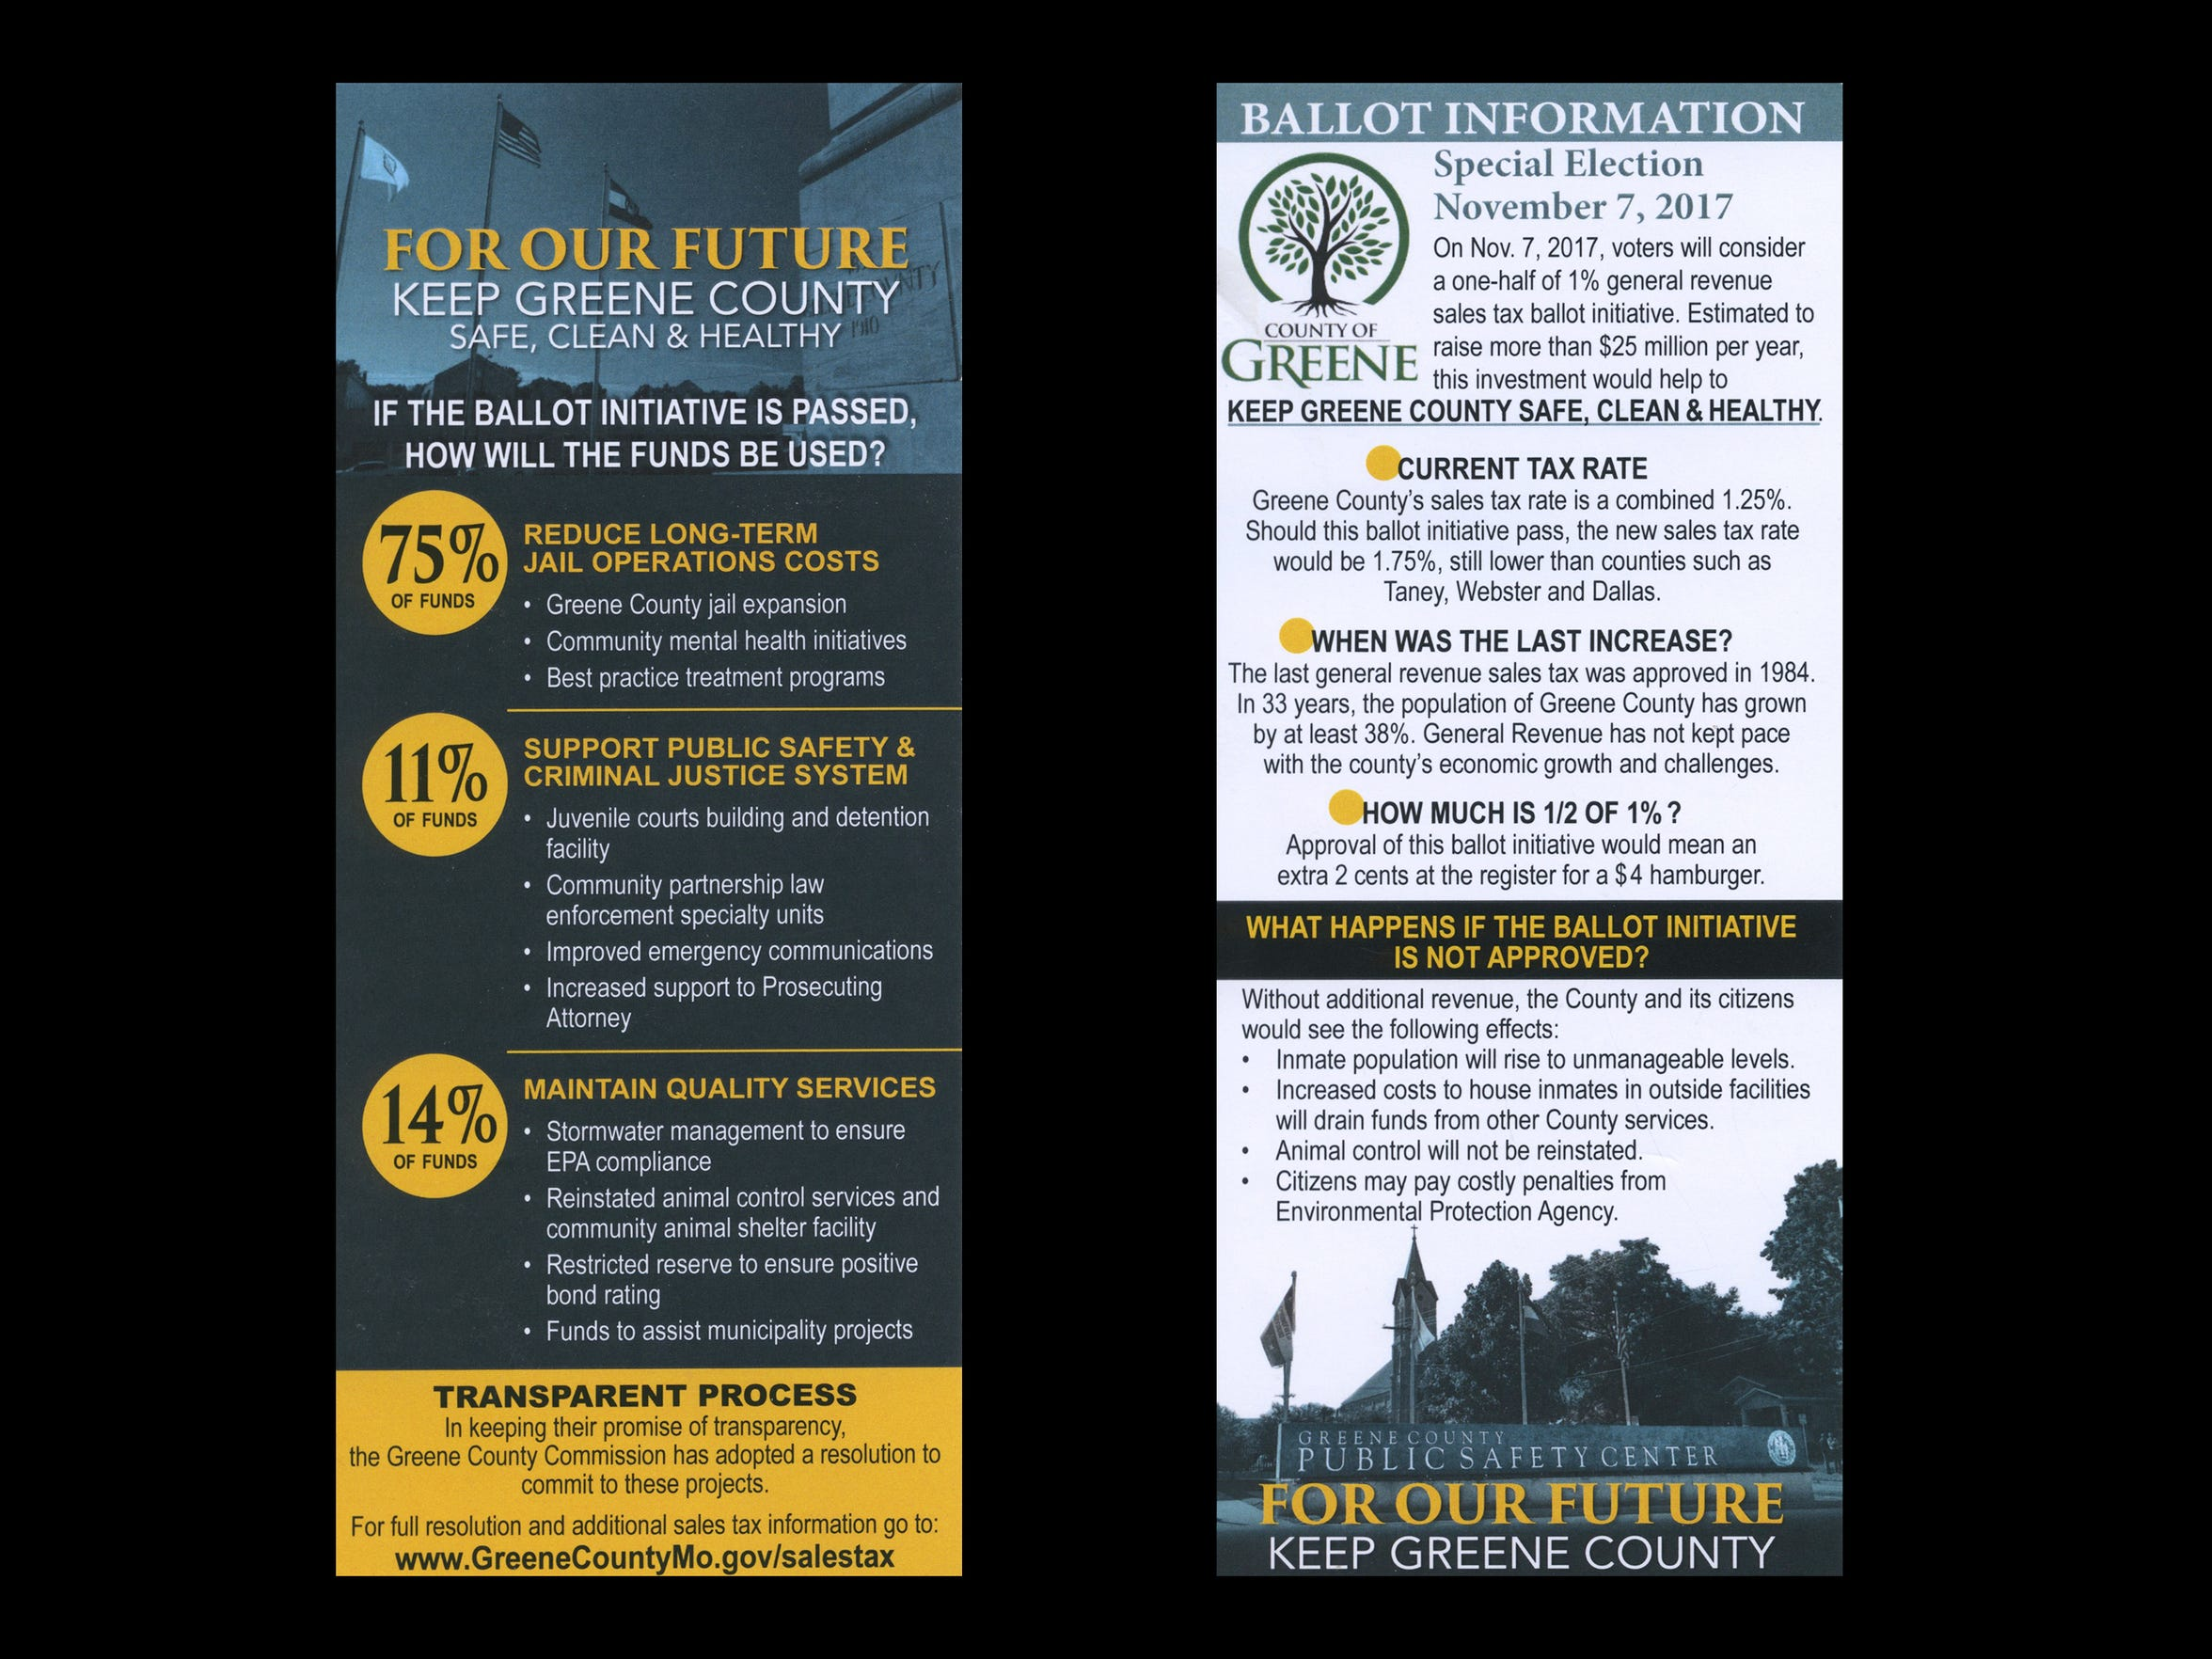 Greene County created and paid for printed material